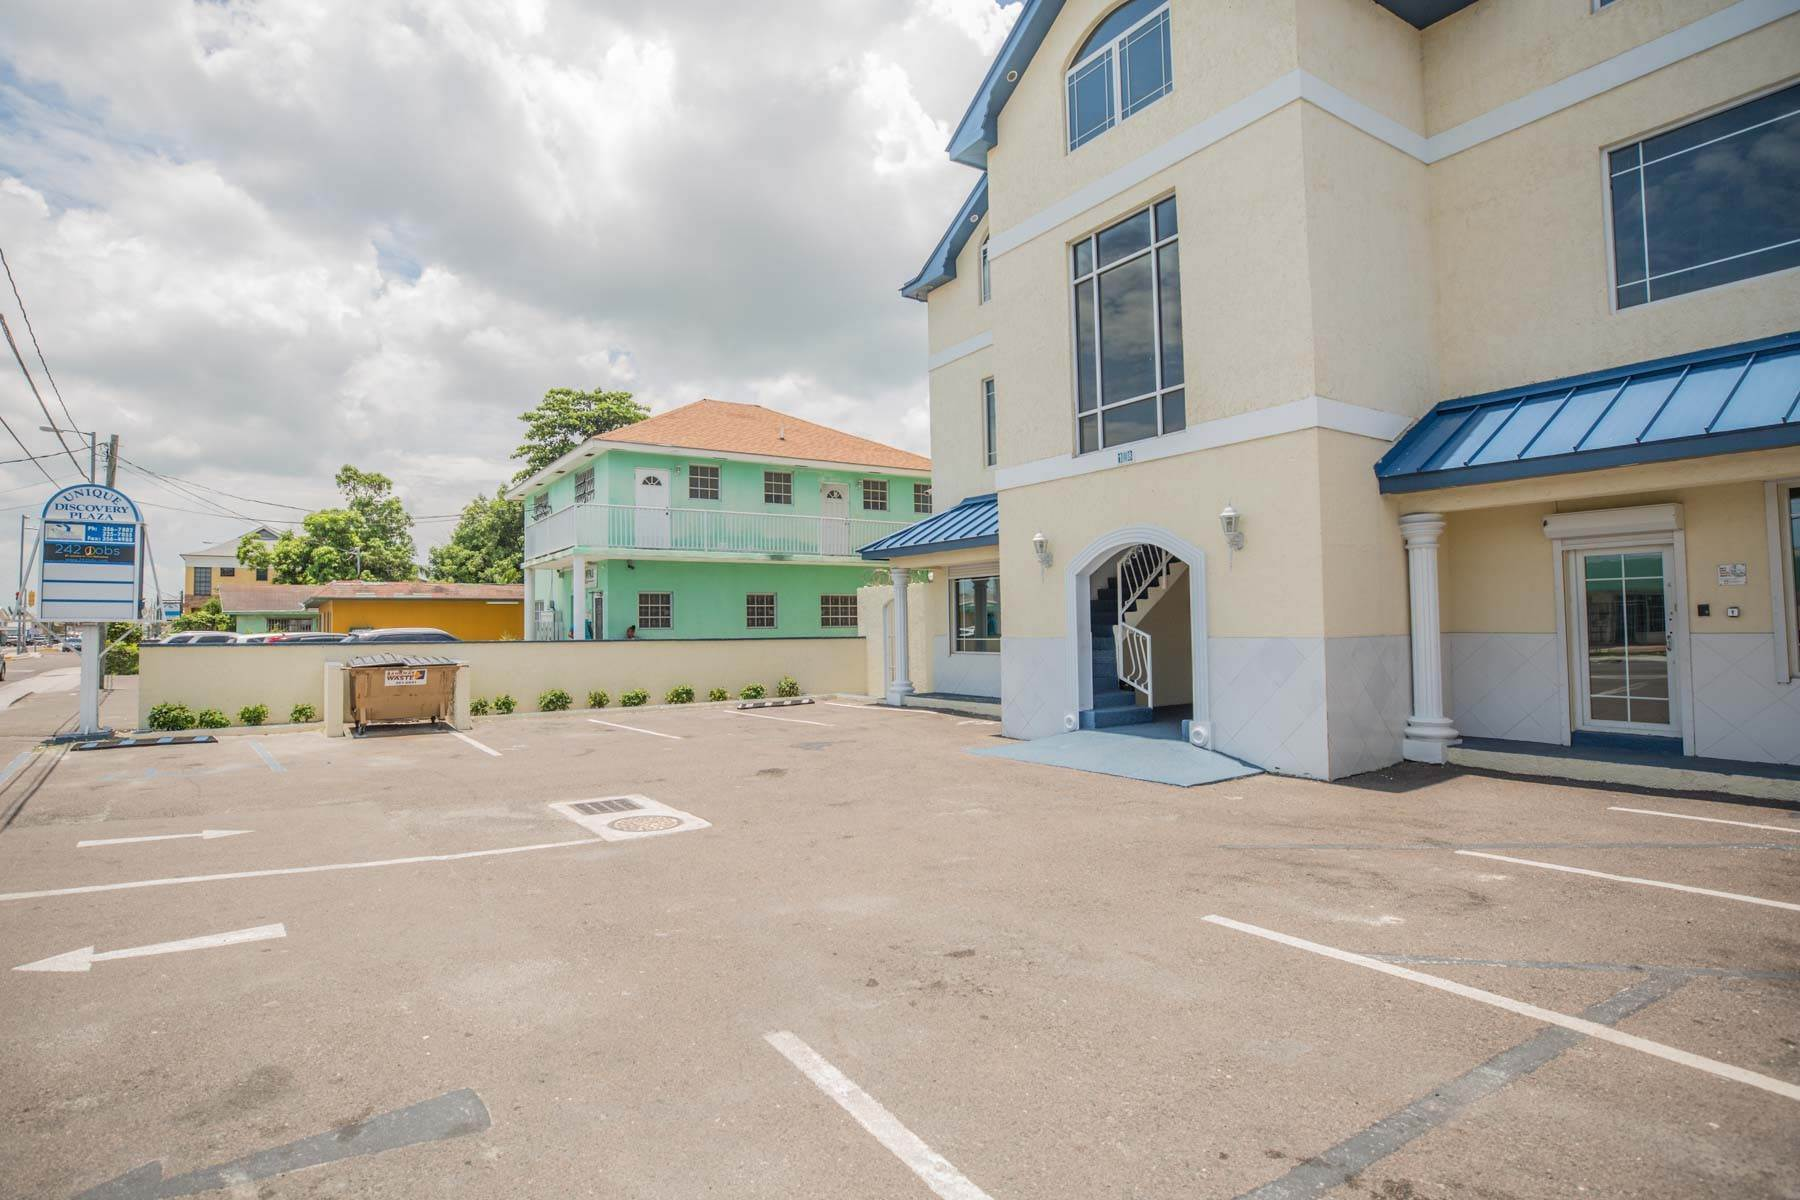 10. Commercial for Rent at Unique Discovery Plaza Upper Floor Office Space - MLS 33337 Nassau And Paradise Island, Bahamas